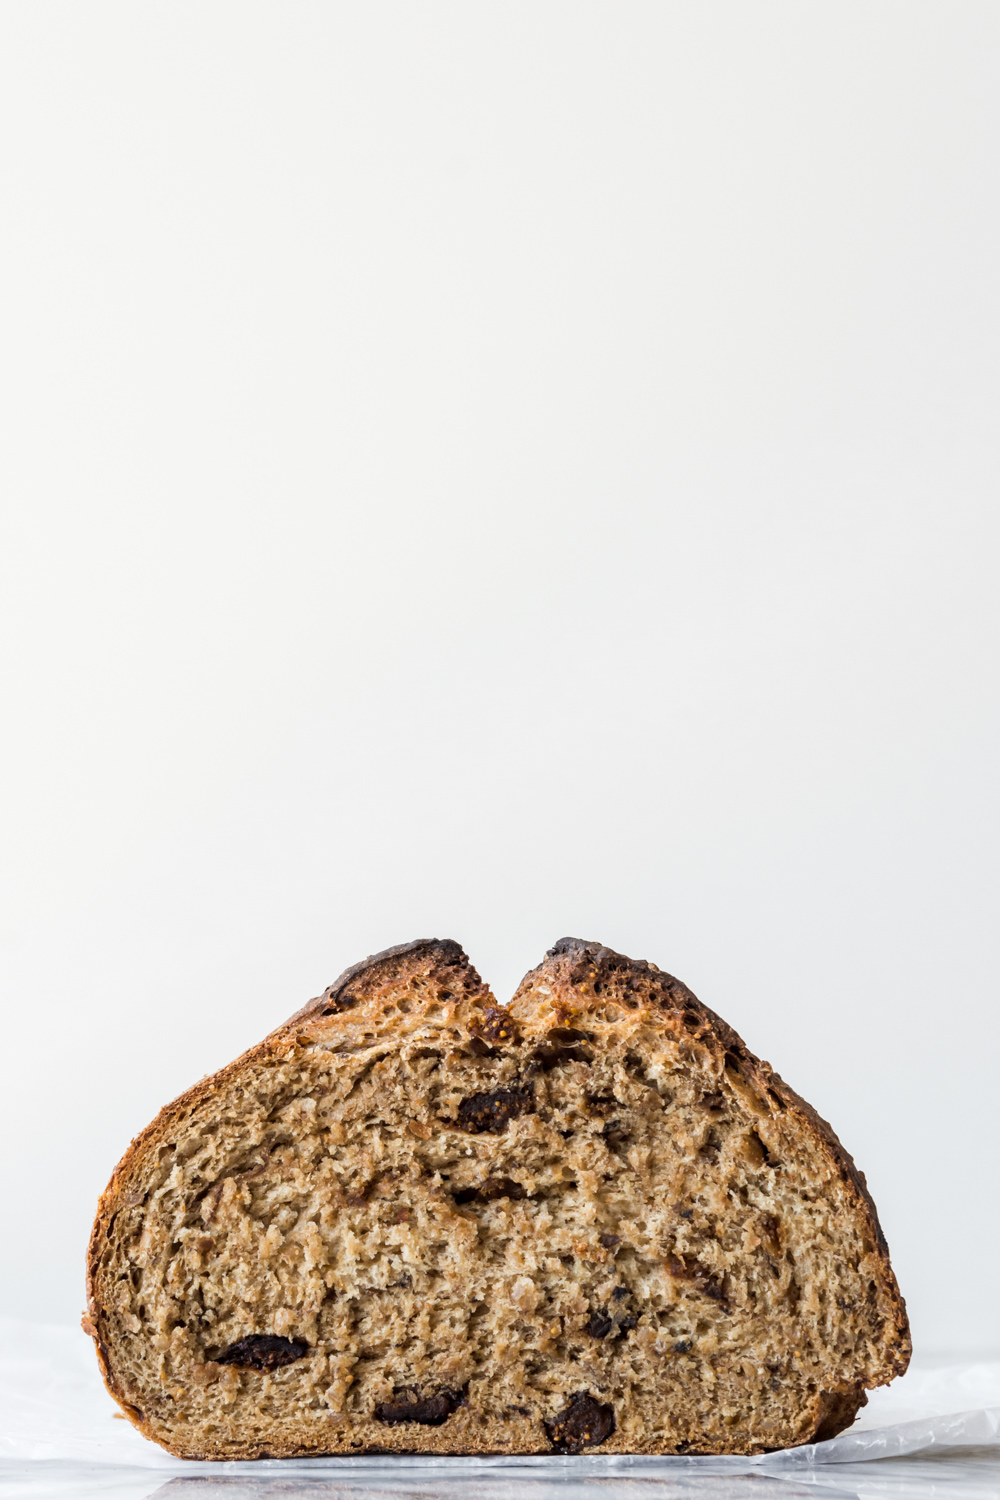 fig and anise seed wheat bread.jpg